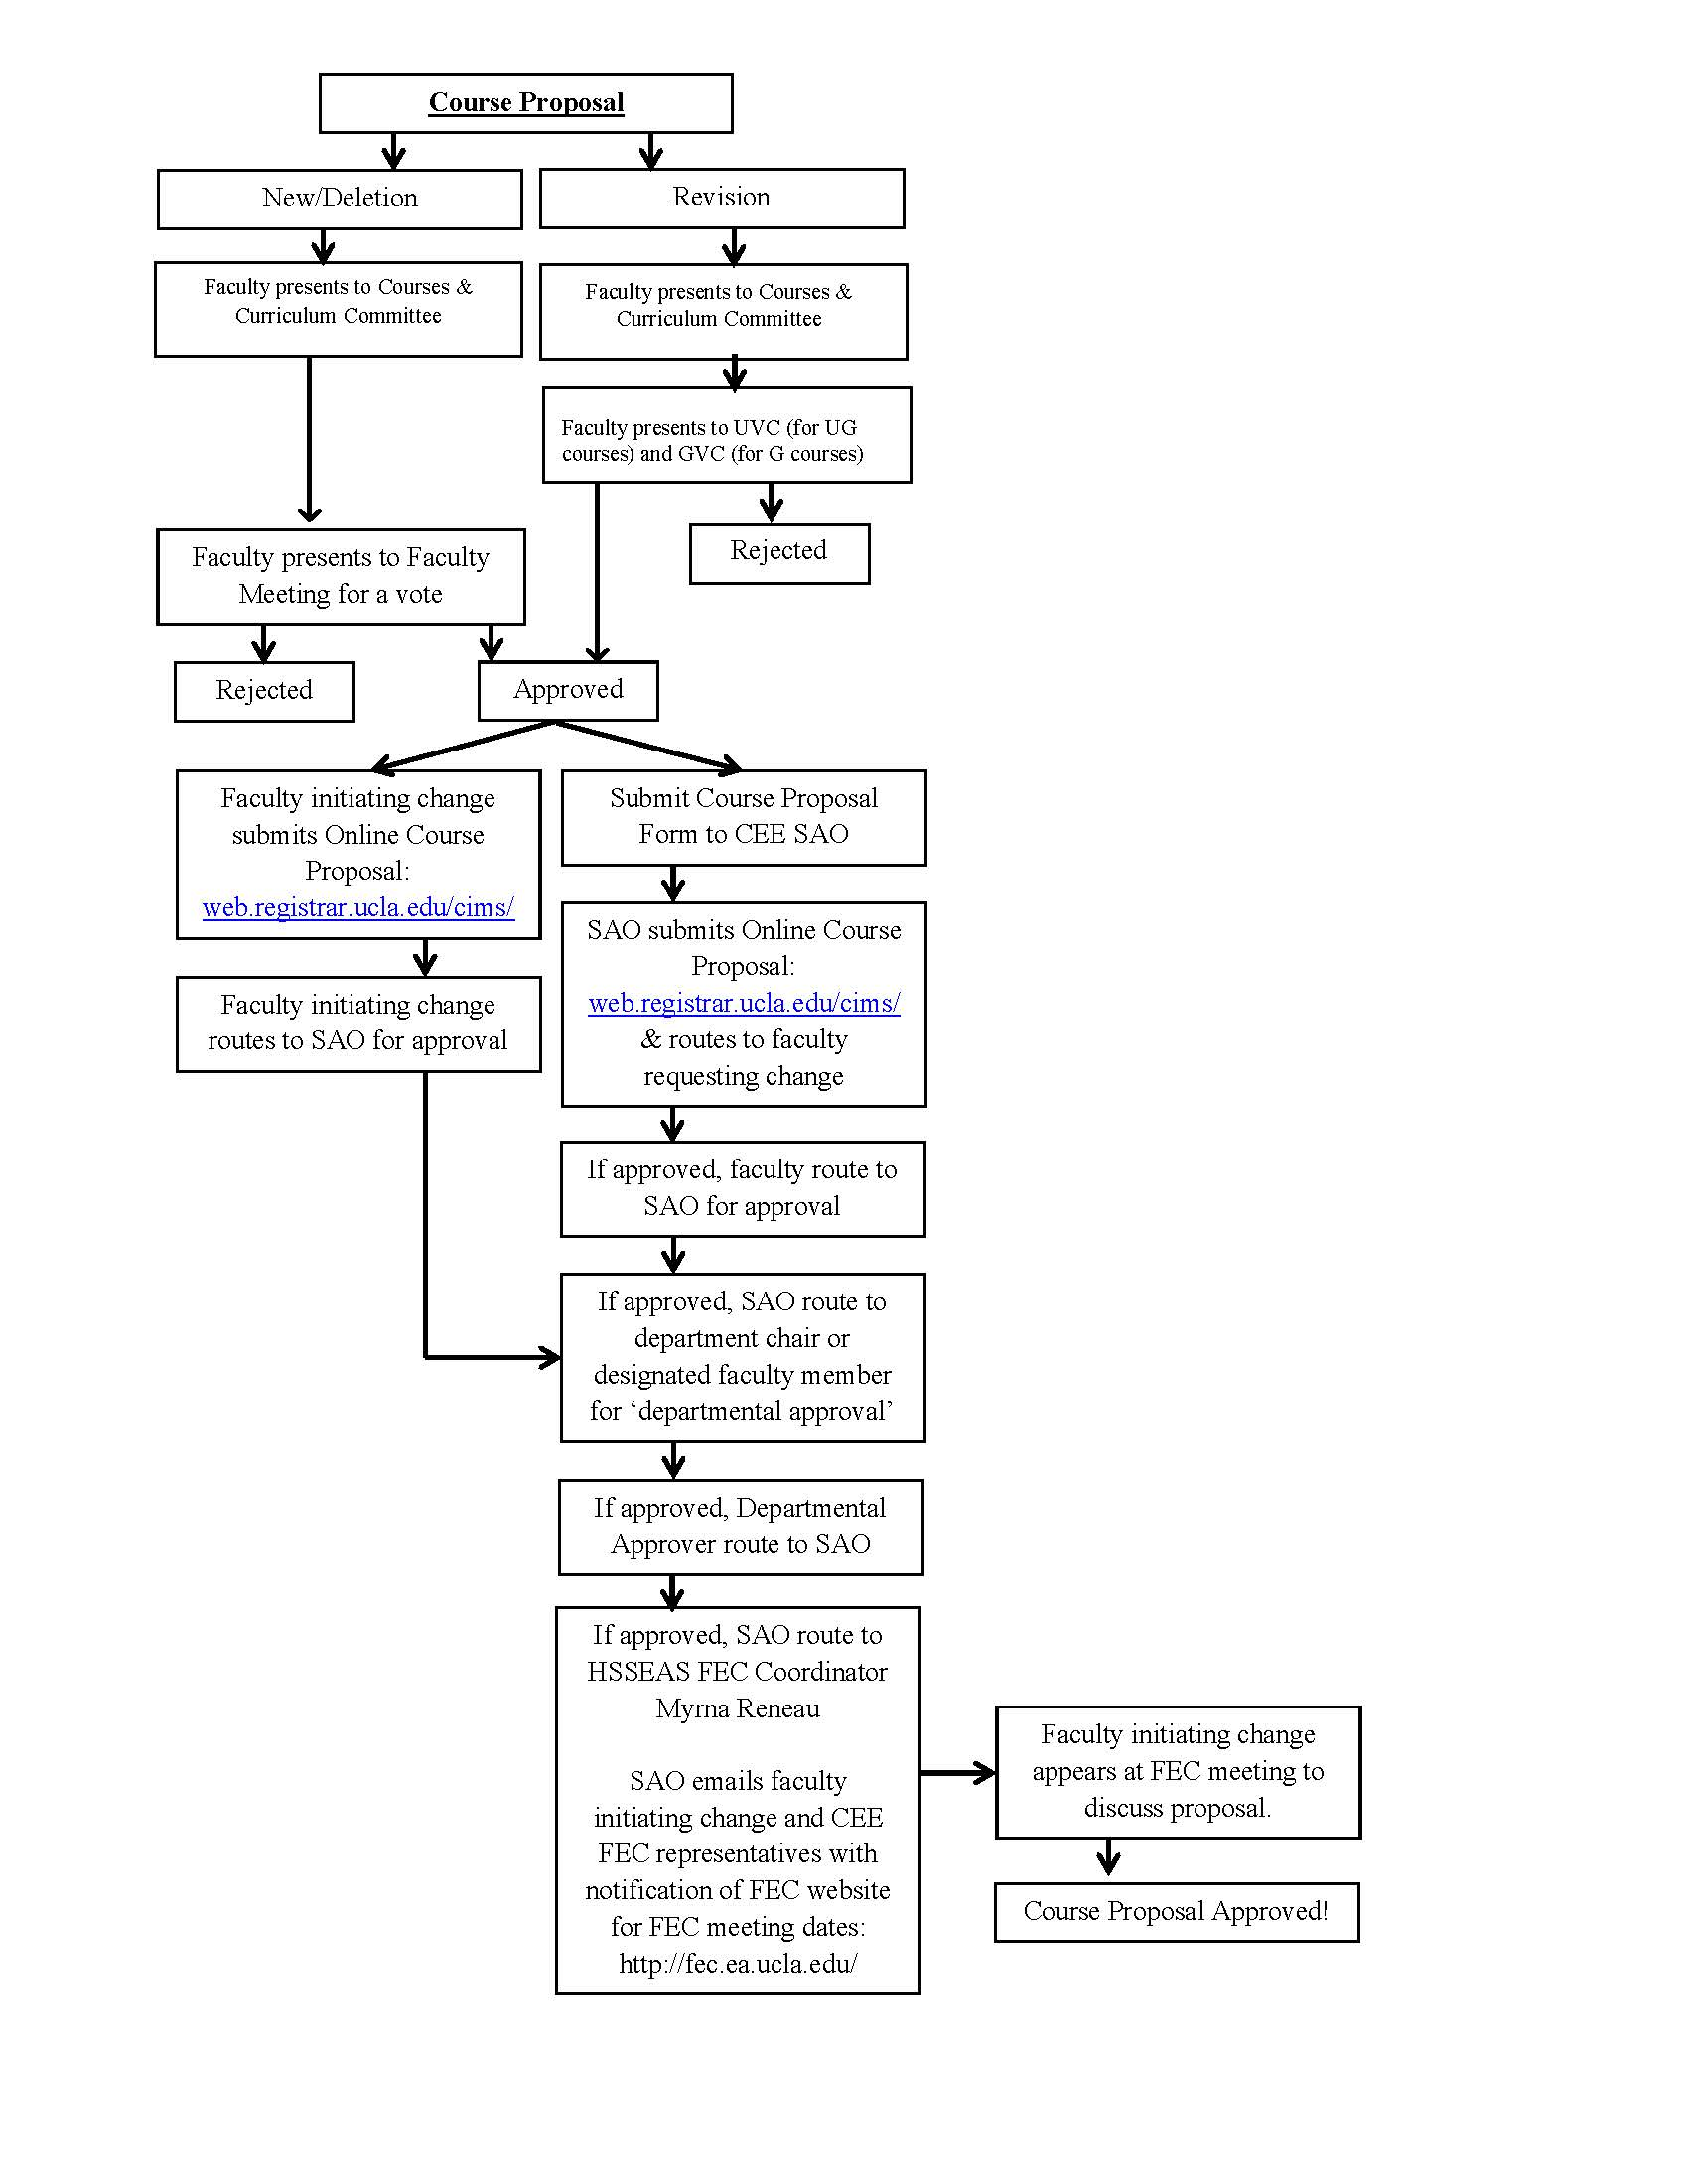 Course Proposal Flowchart, updated 10/8/2020